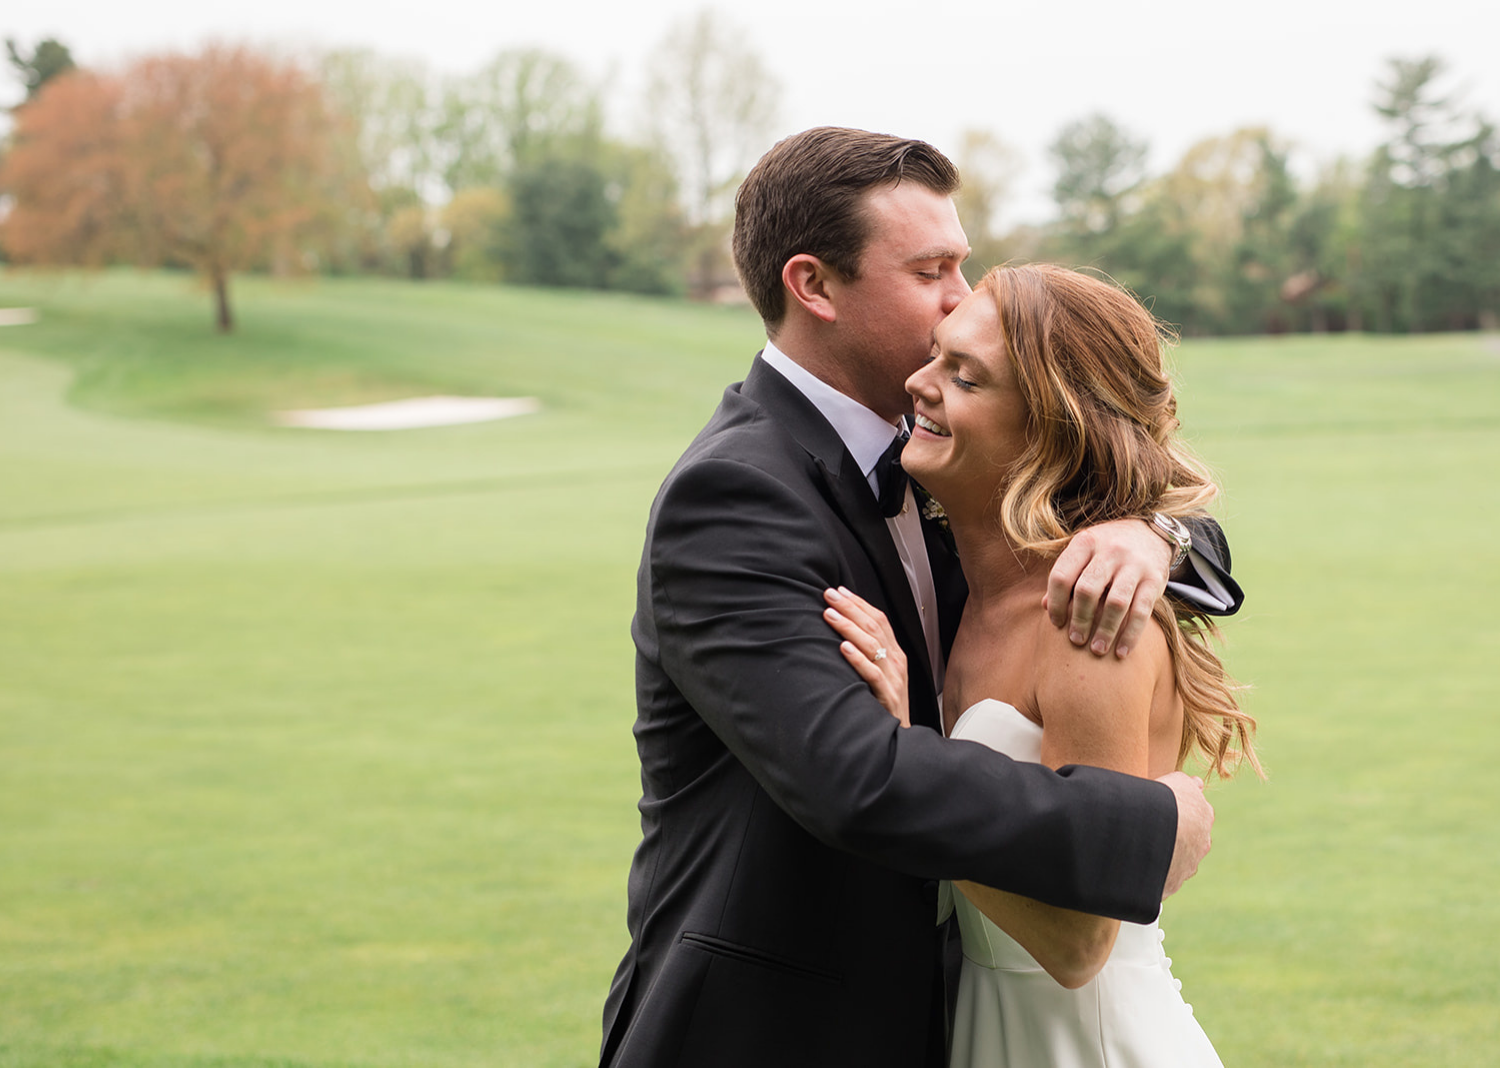 groom hugs his bride as he sees her for the first time in her wedding dress